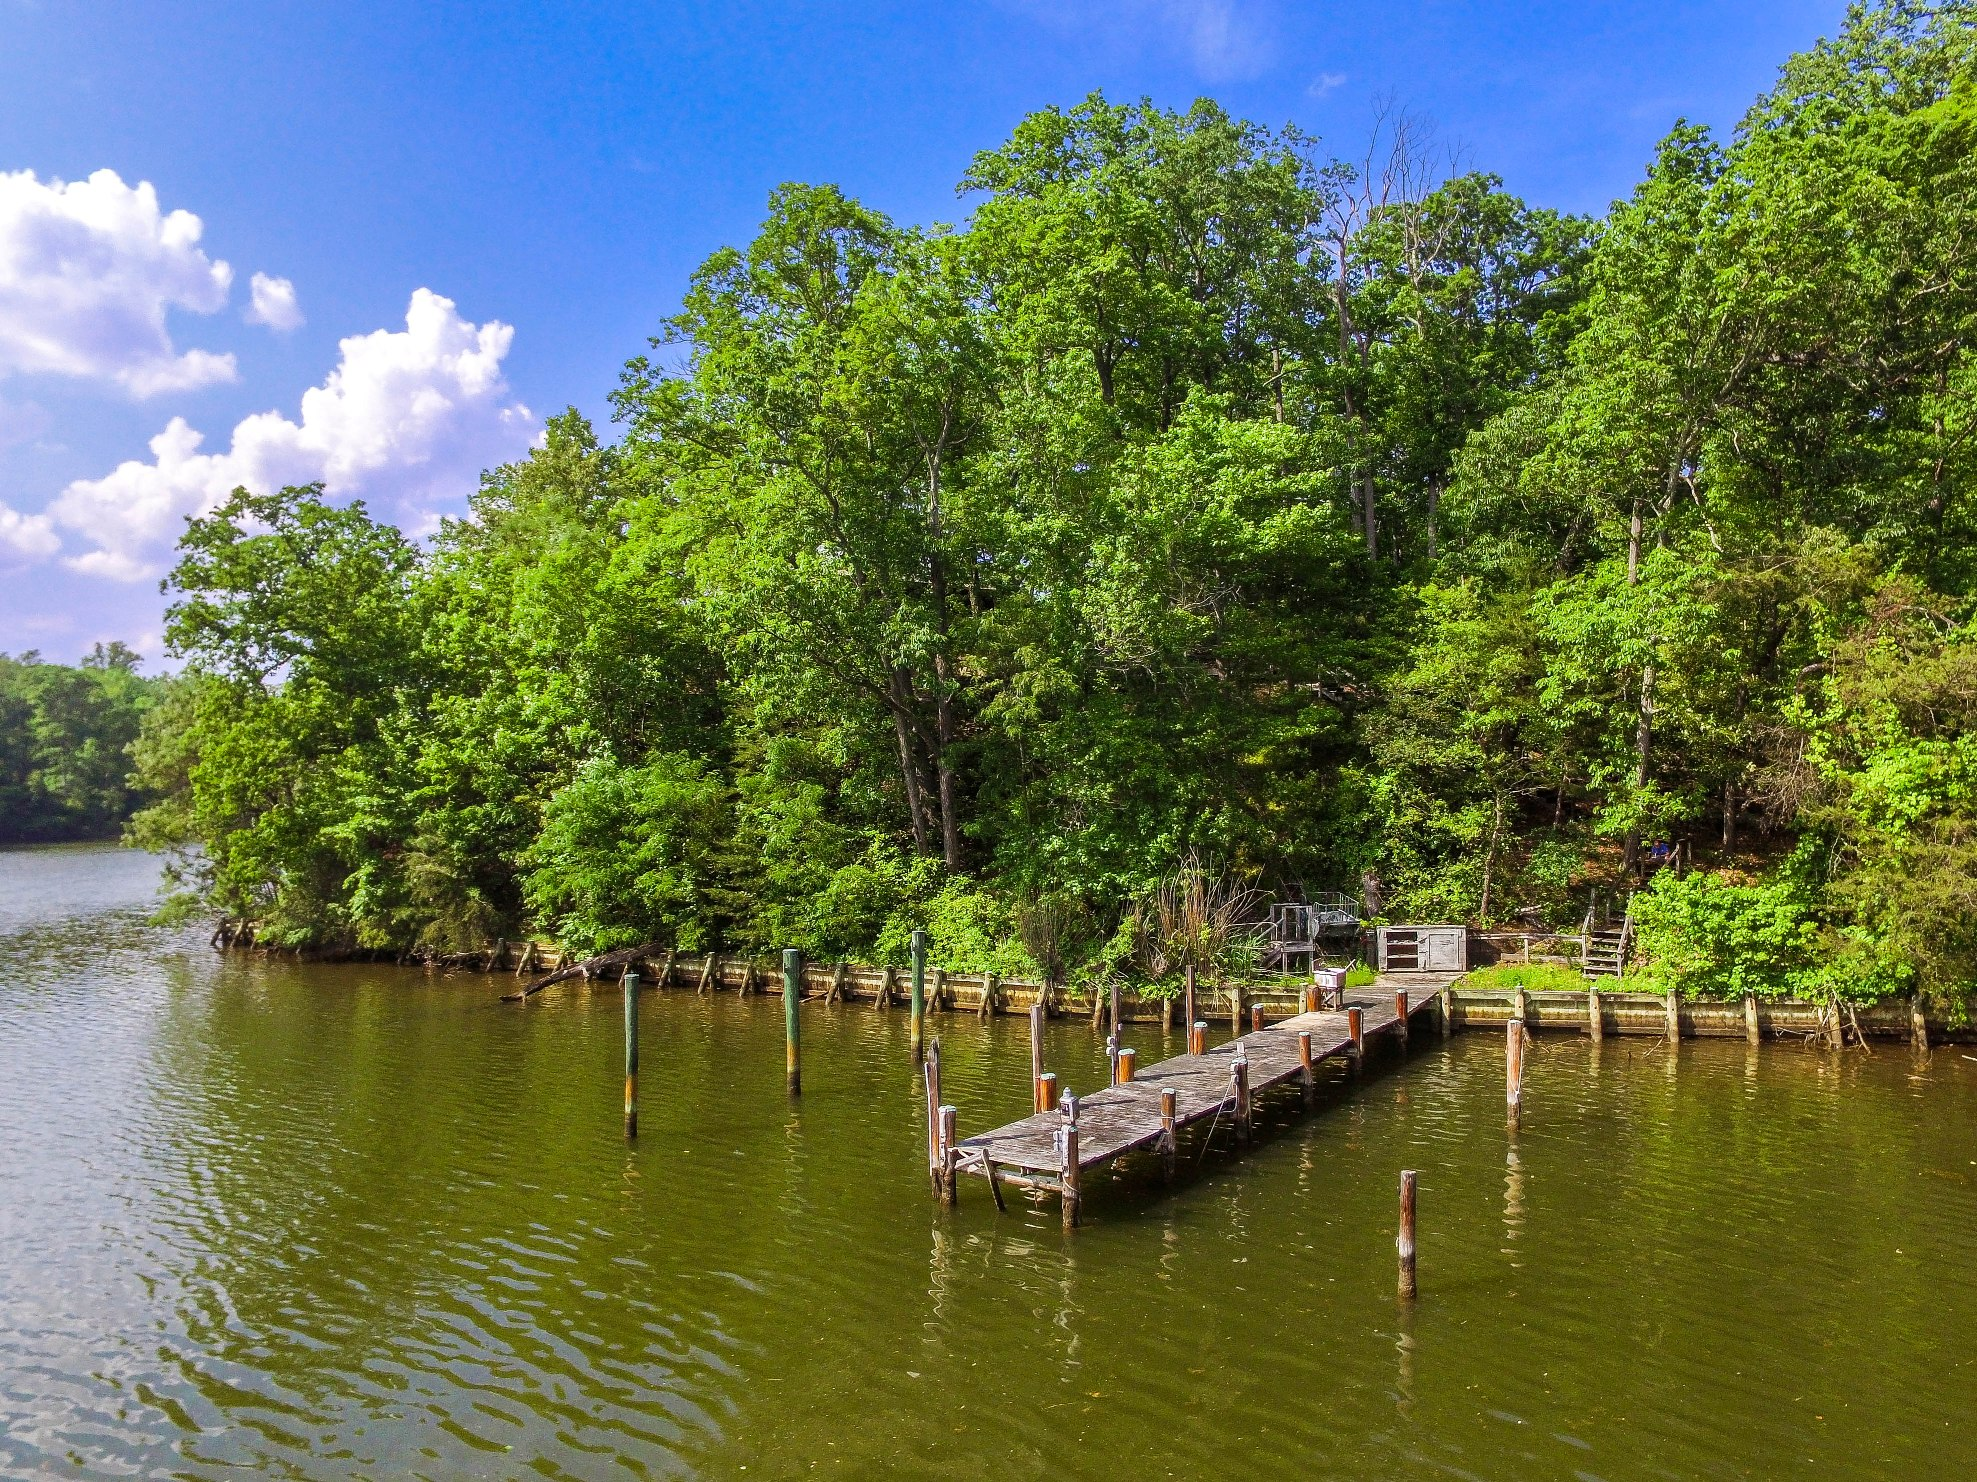 Additional photo for property listing at 850 Childs Point Road, Annapolis 850 Childs Point Rd Annapolis, Μεριλαντ 21401 Ηνωμενεσ Πολιτειεσ